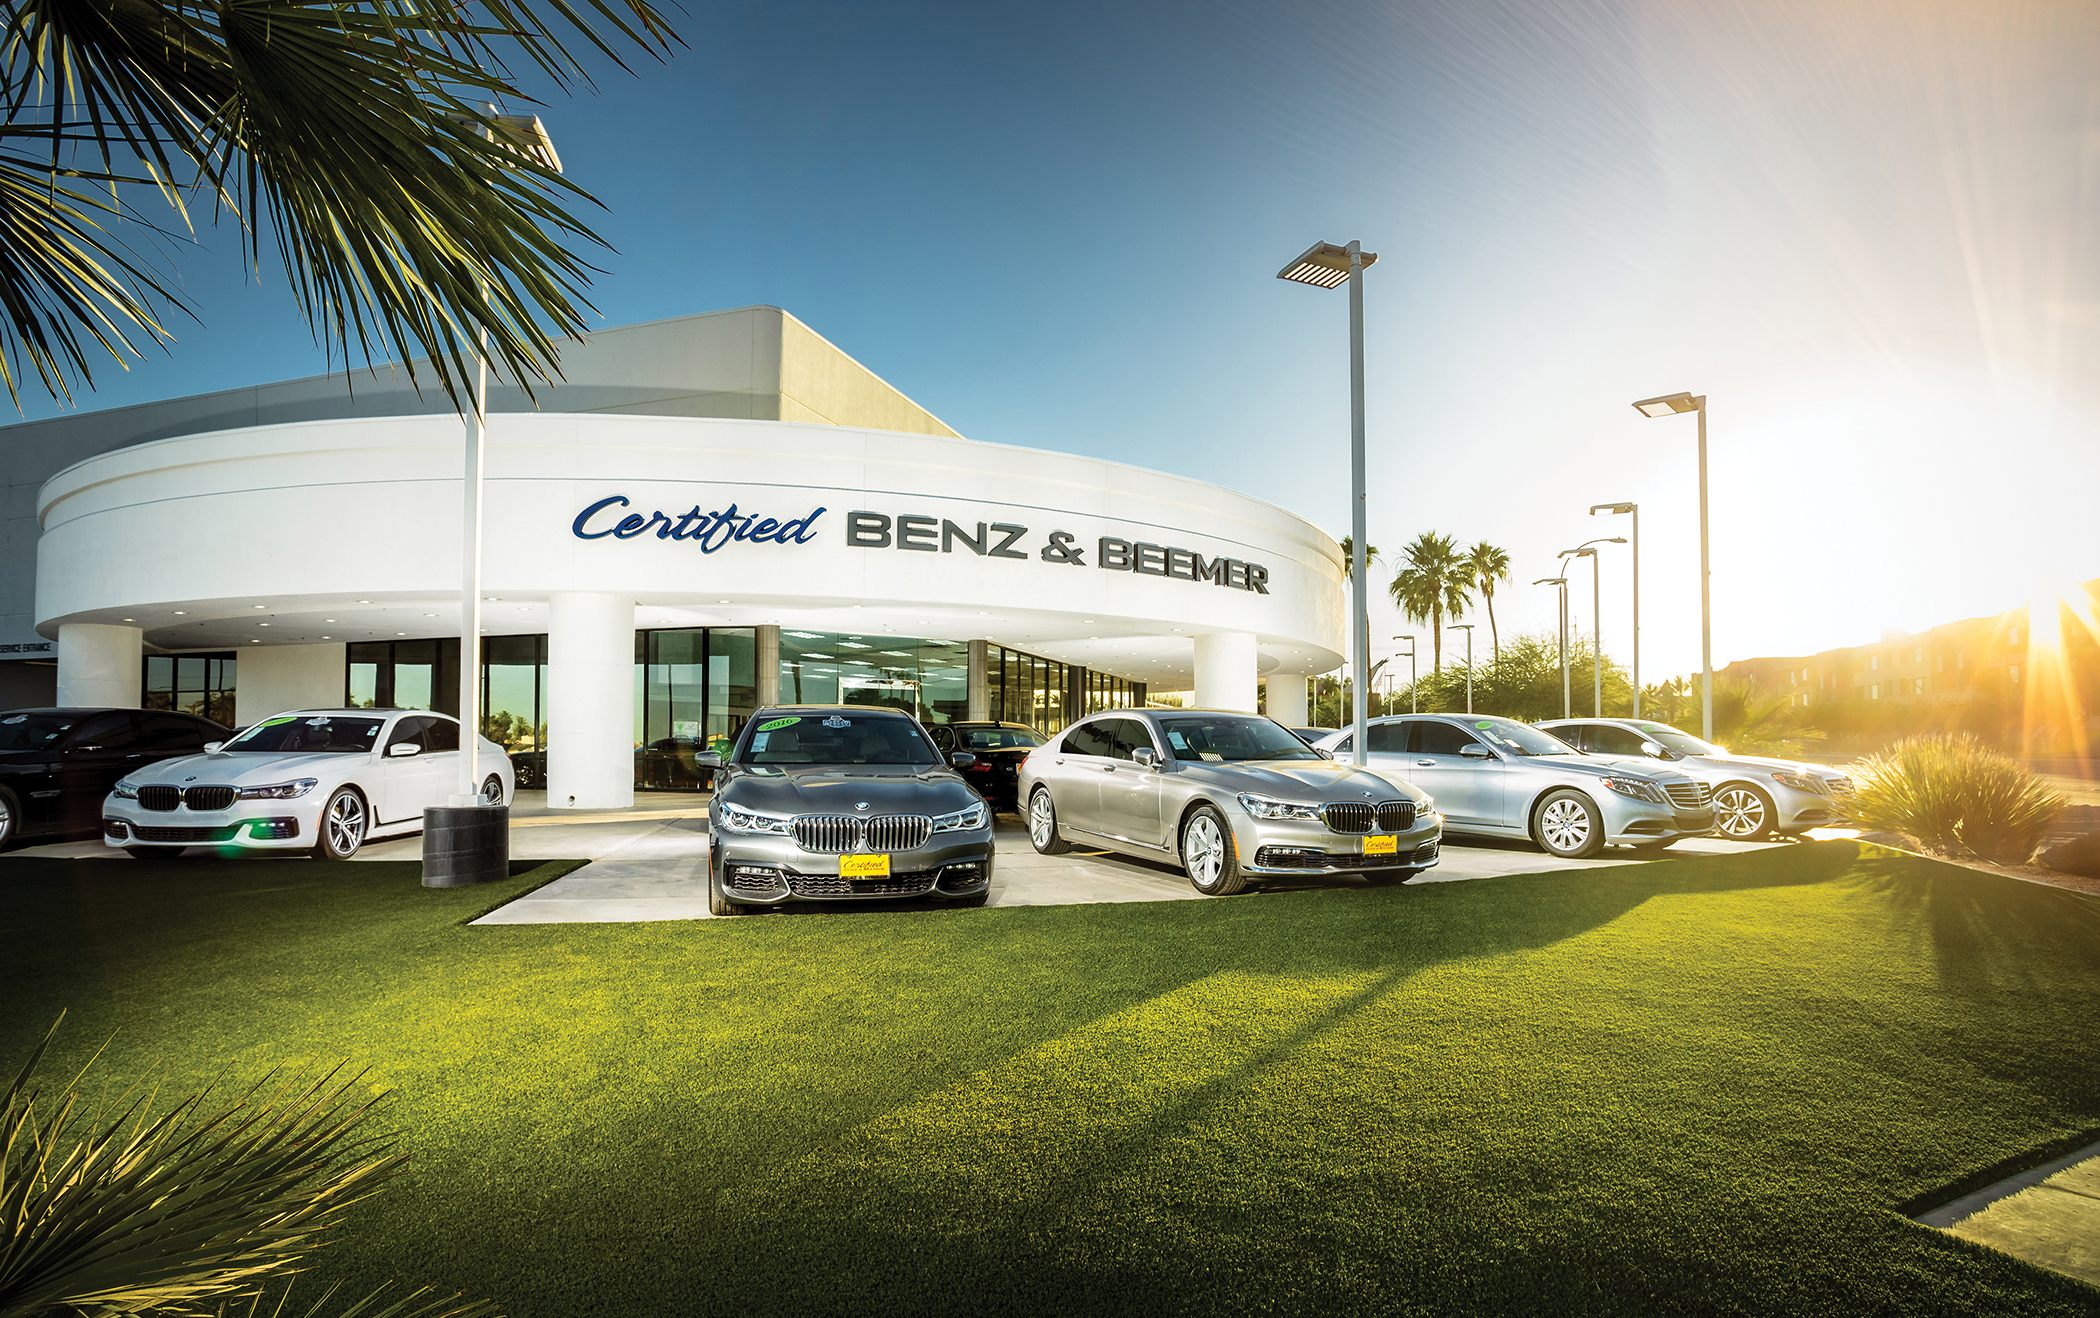 Certified Benz Beemer Expands With New Location Highline Autos